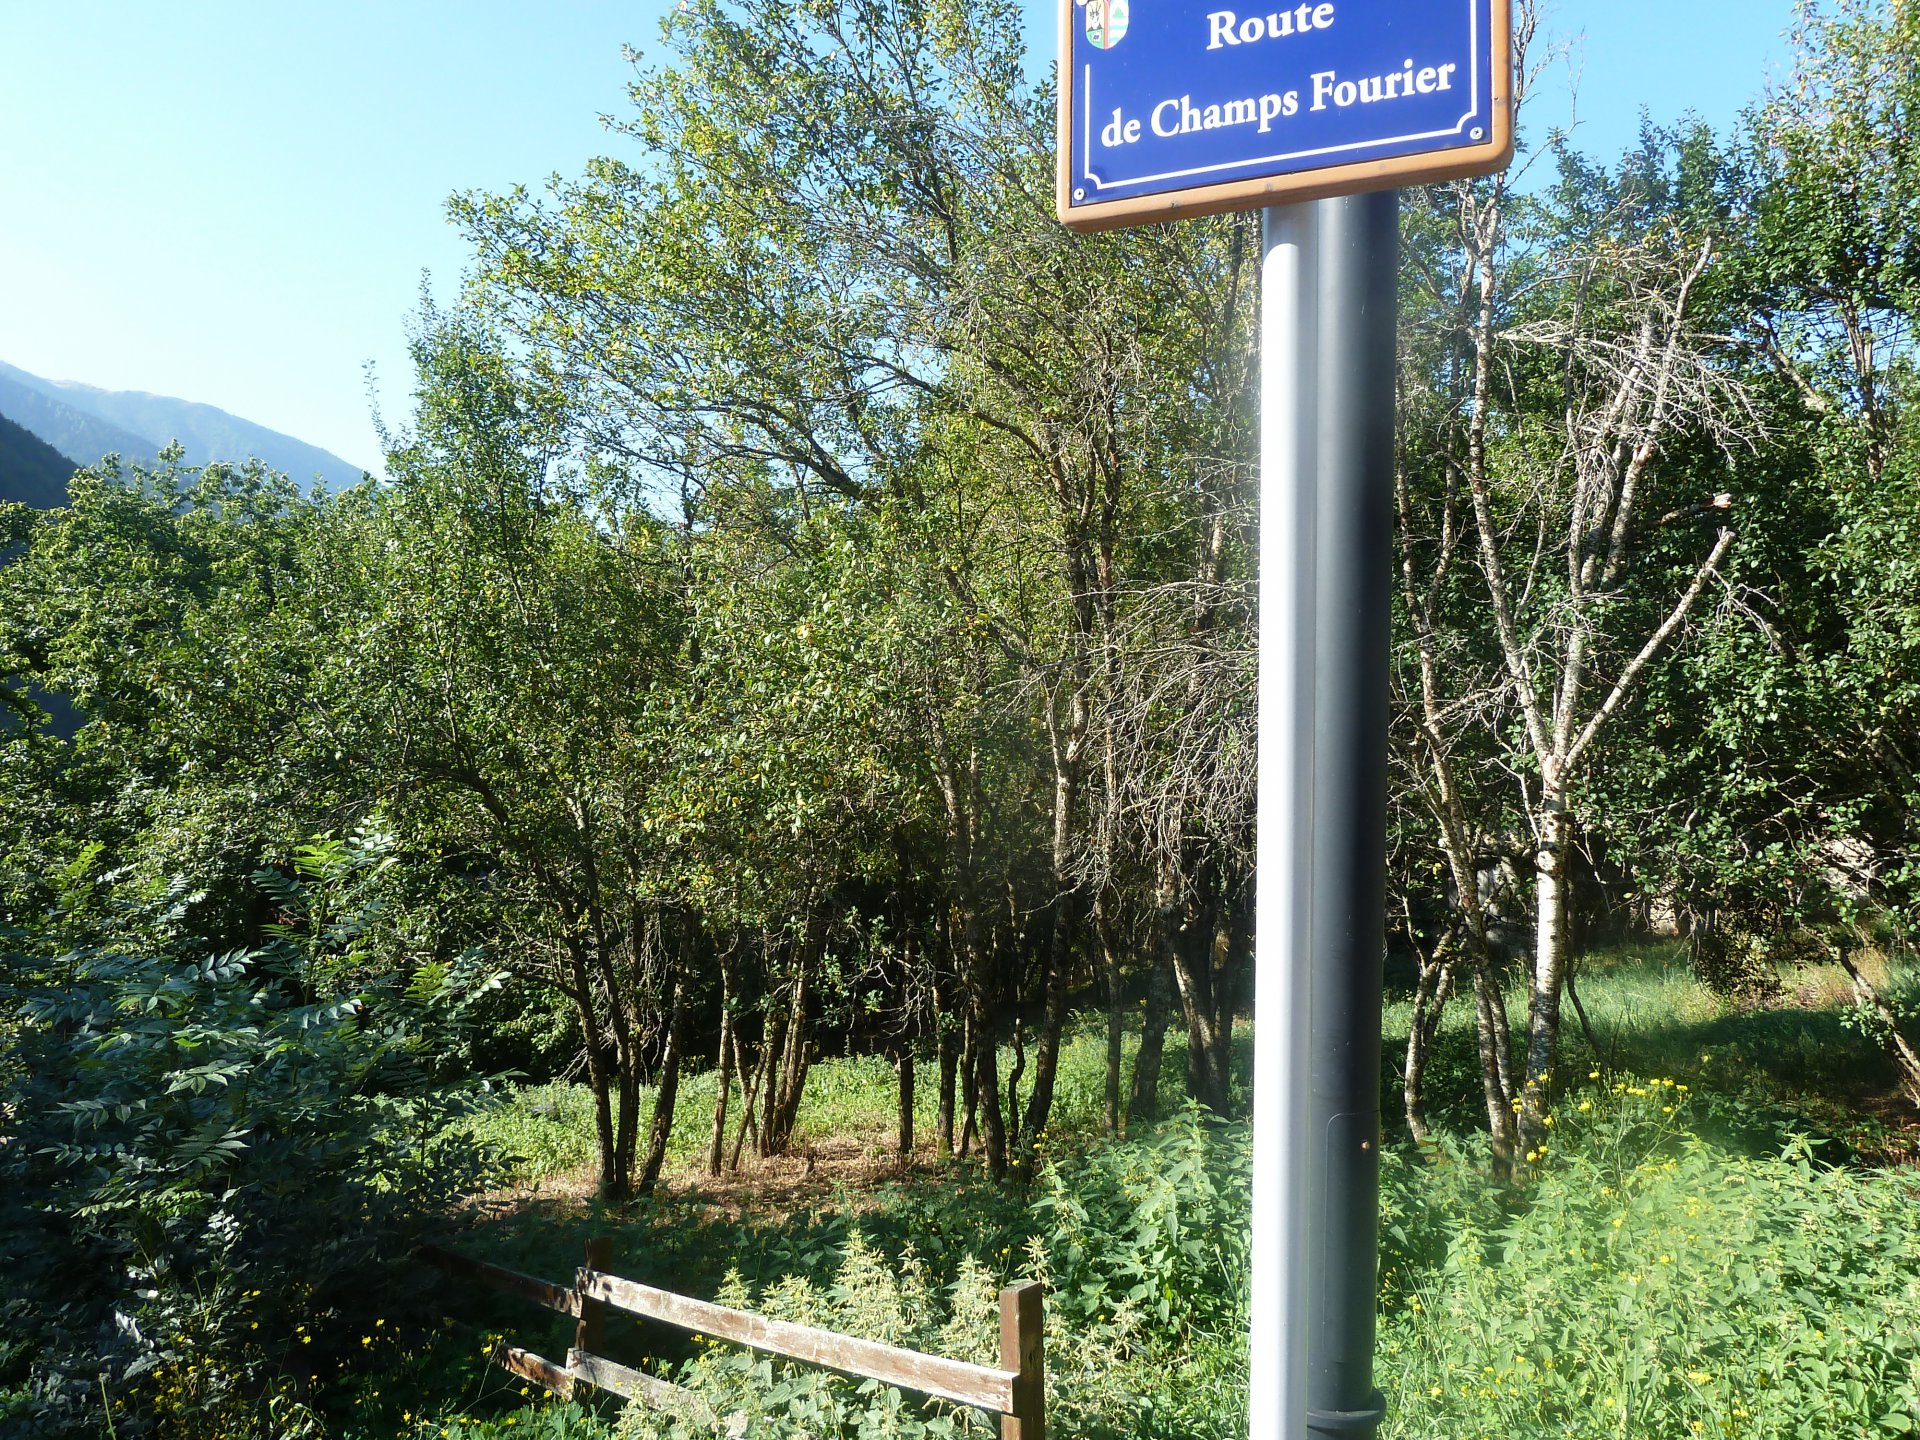 Sale Building land - Vaujany